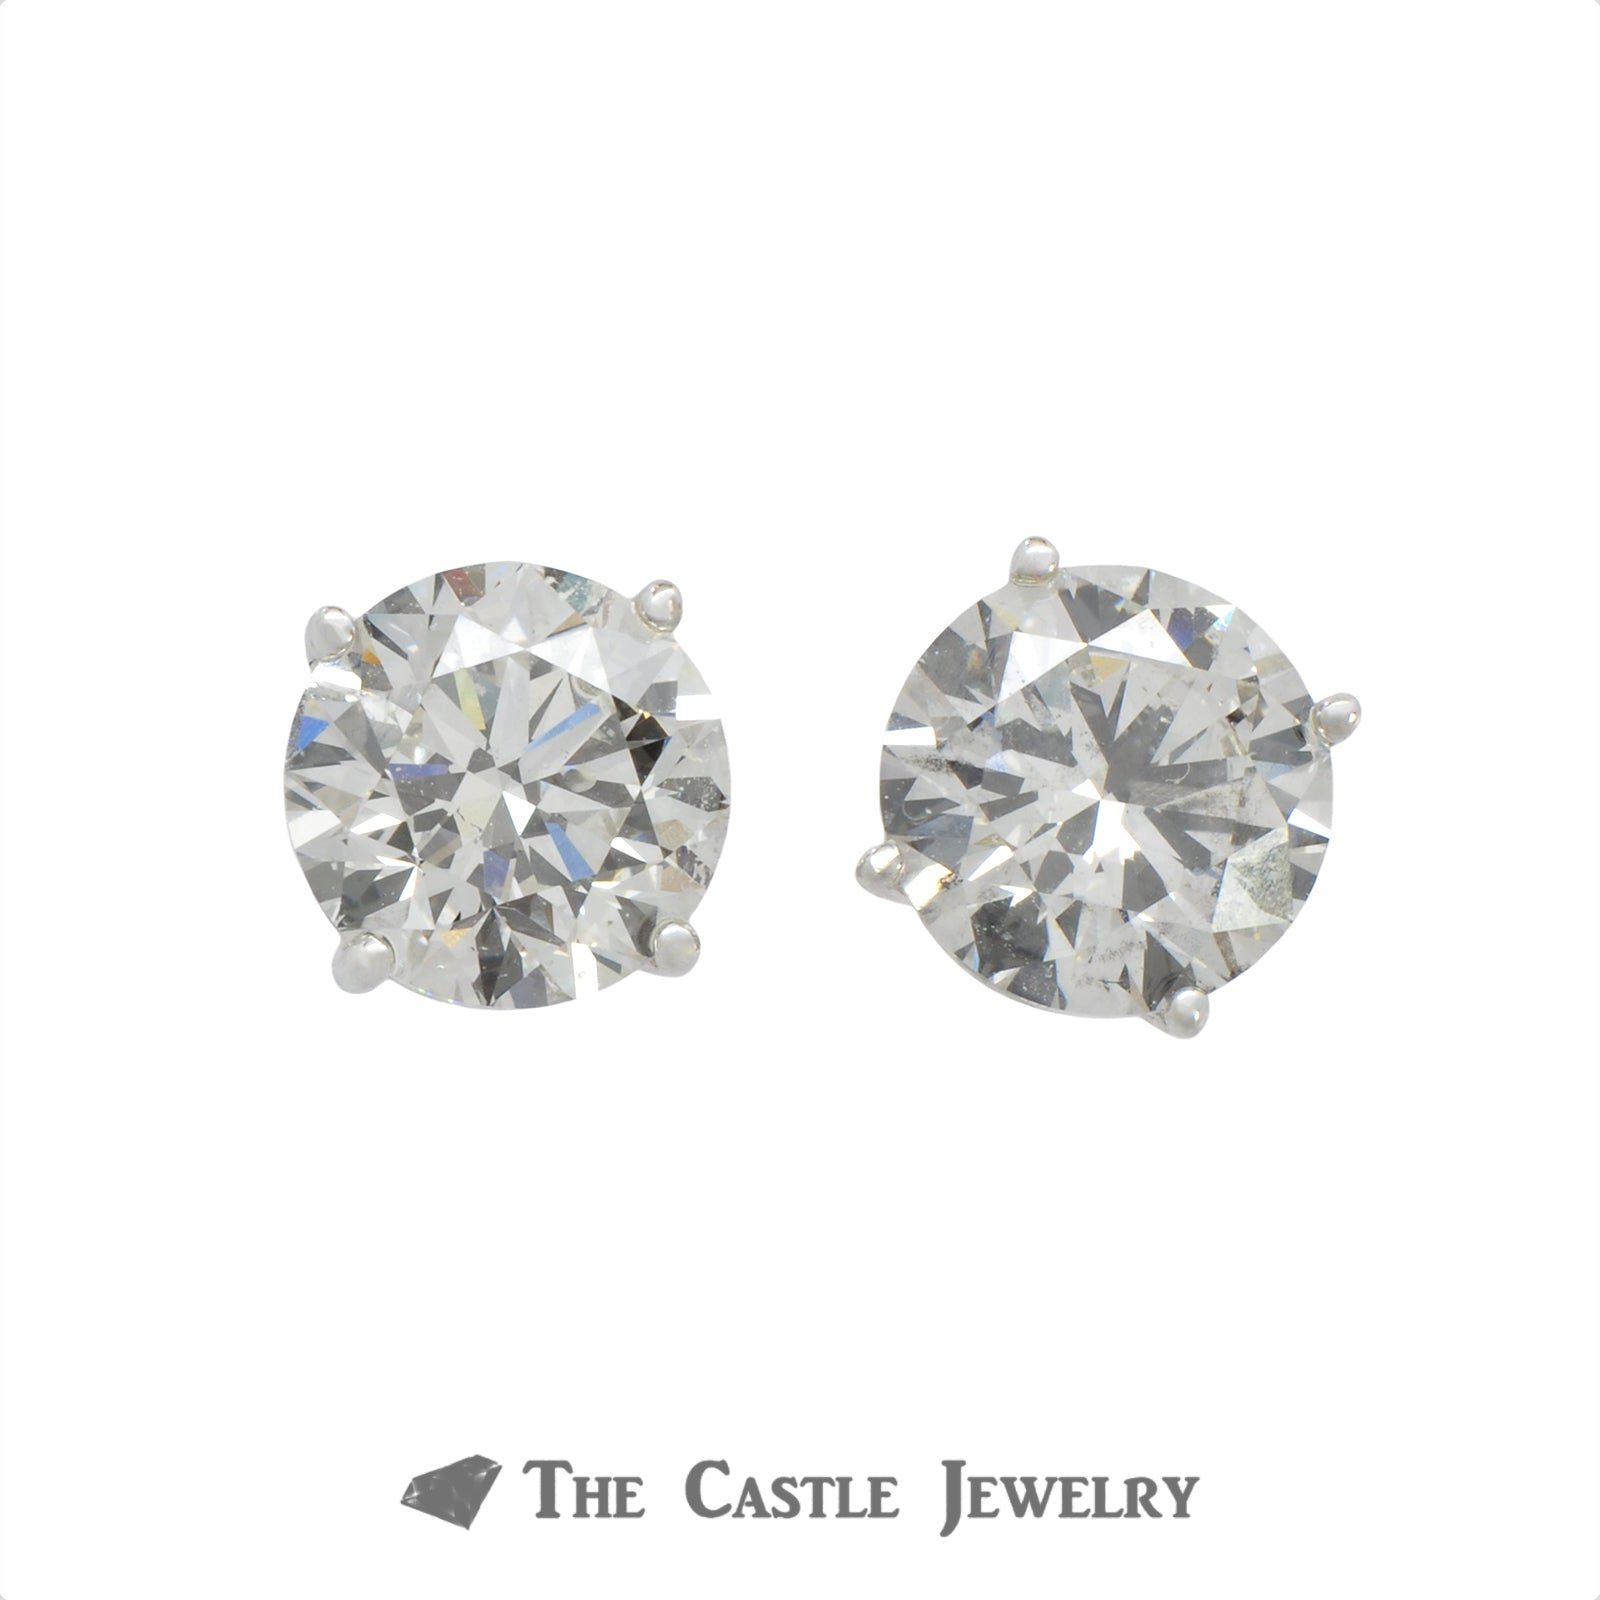 Lab Grown Certified Round Brilliant Cut Diamond Stud Earrings 4.01 cttw